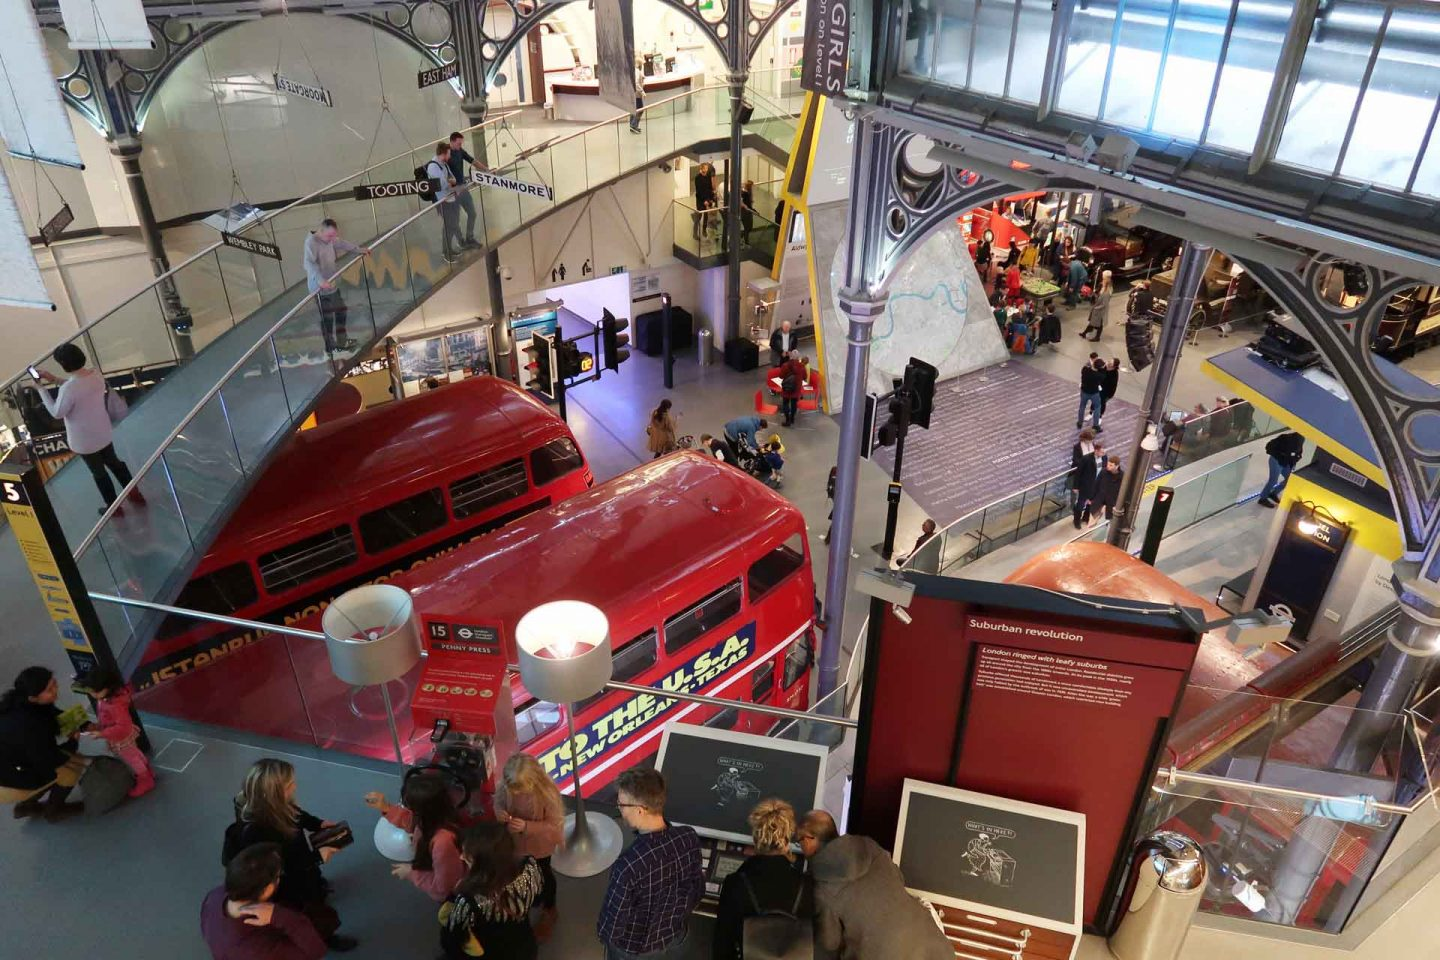 View of the London Transport Museum from above